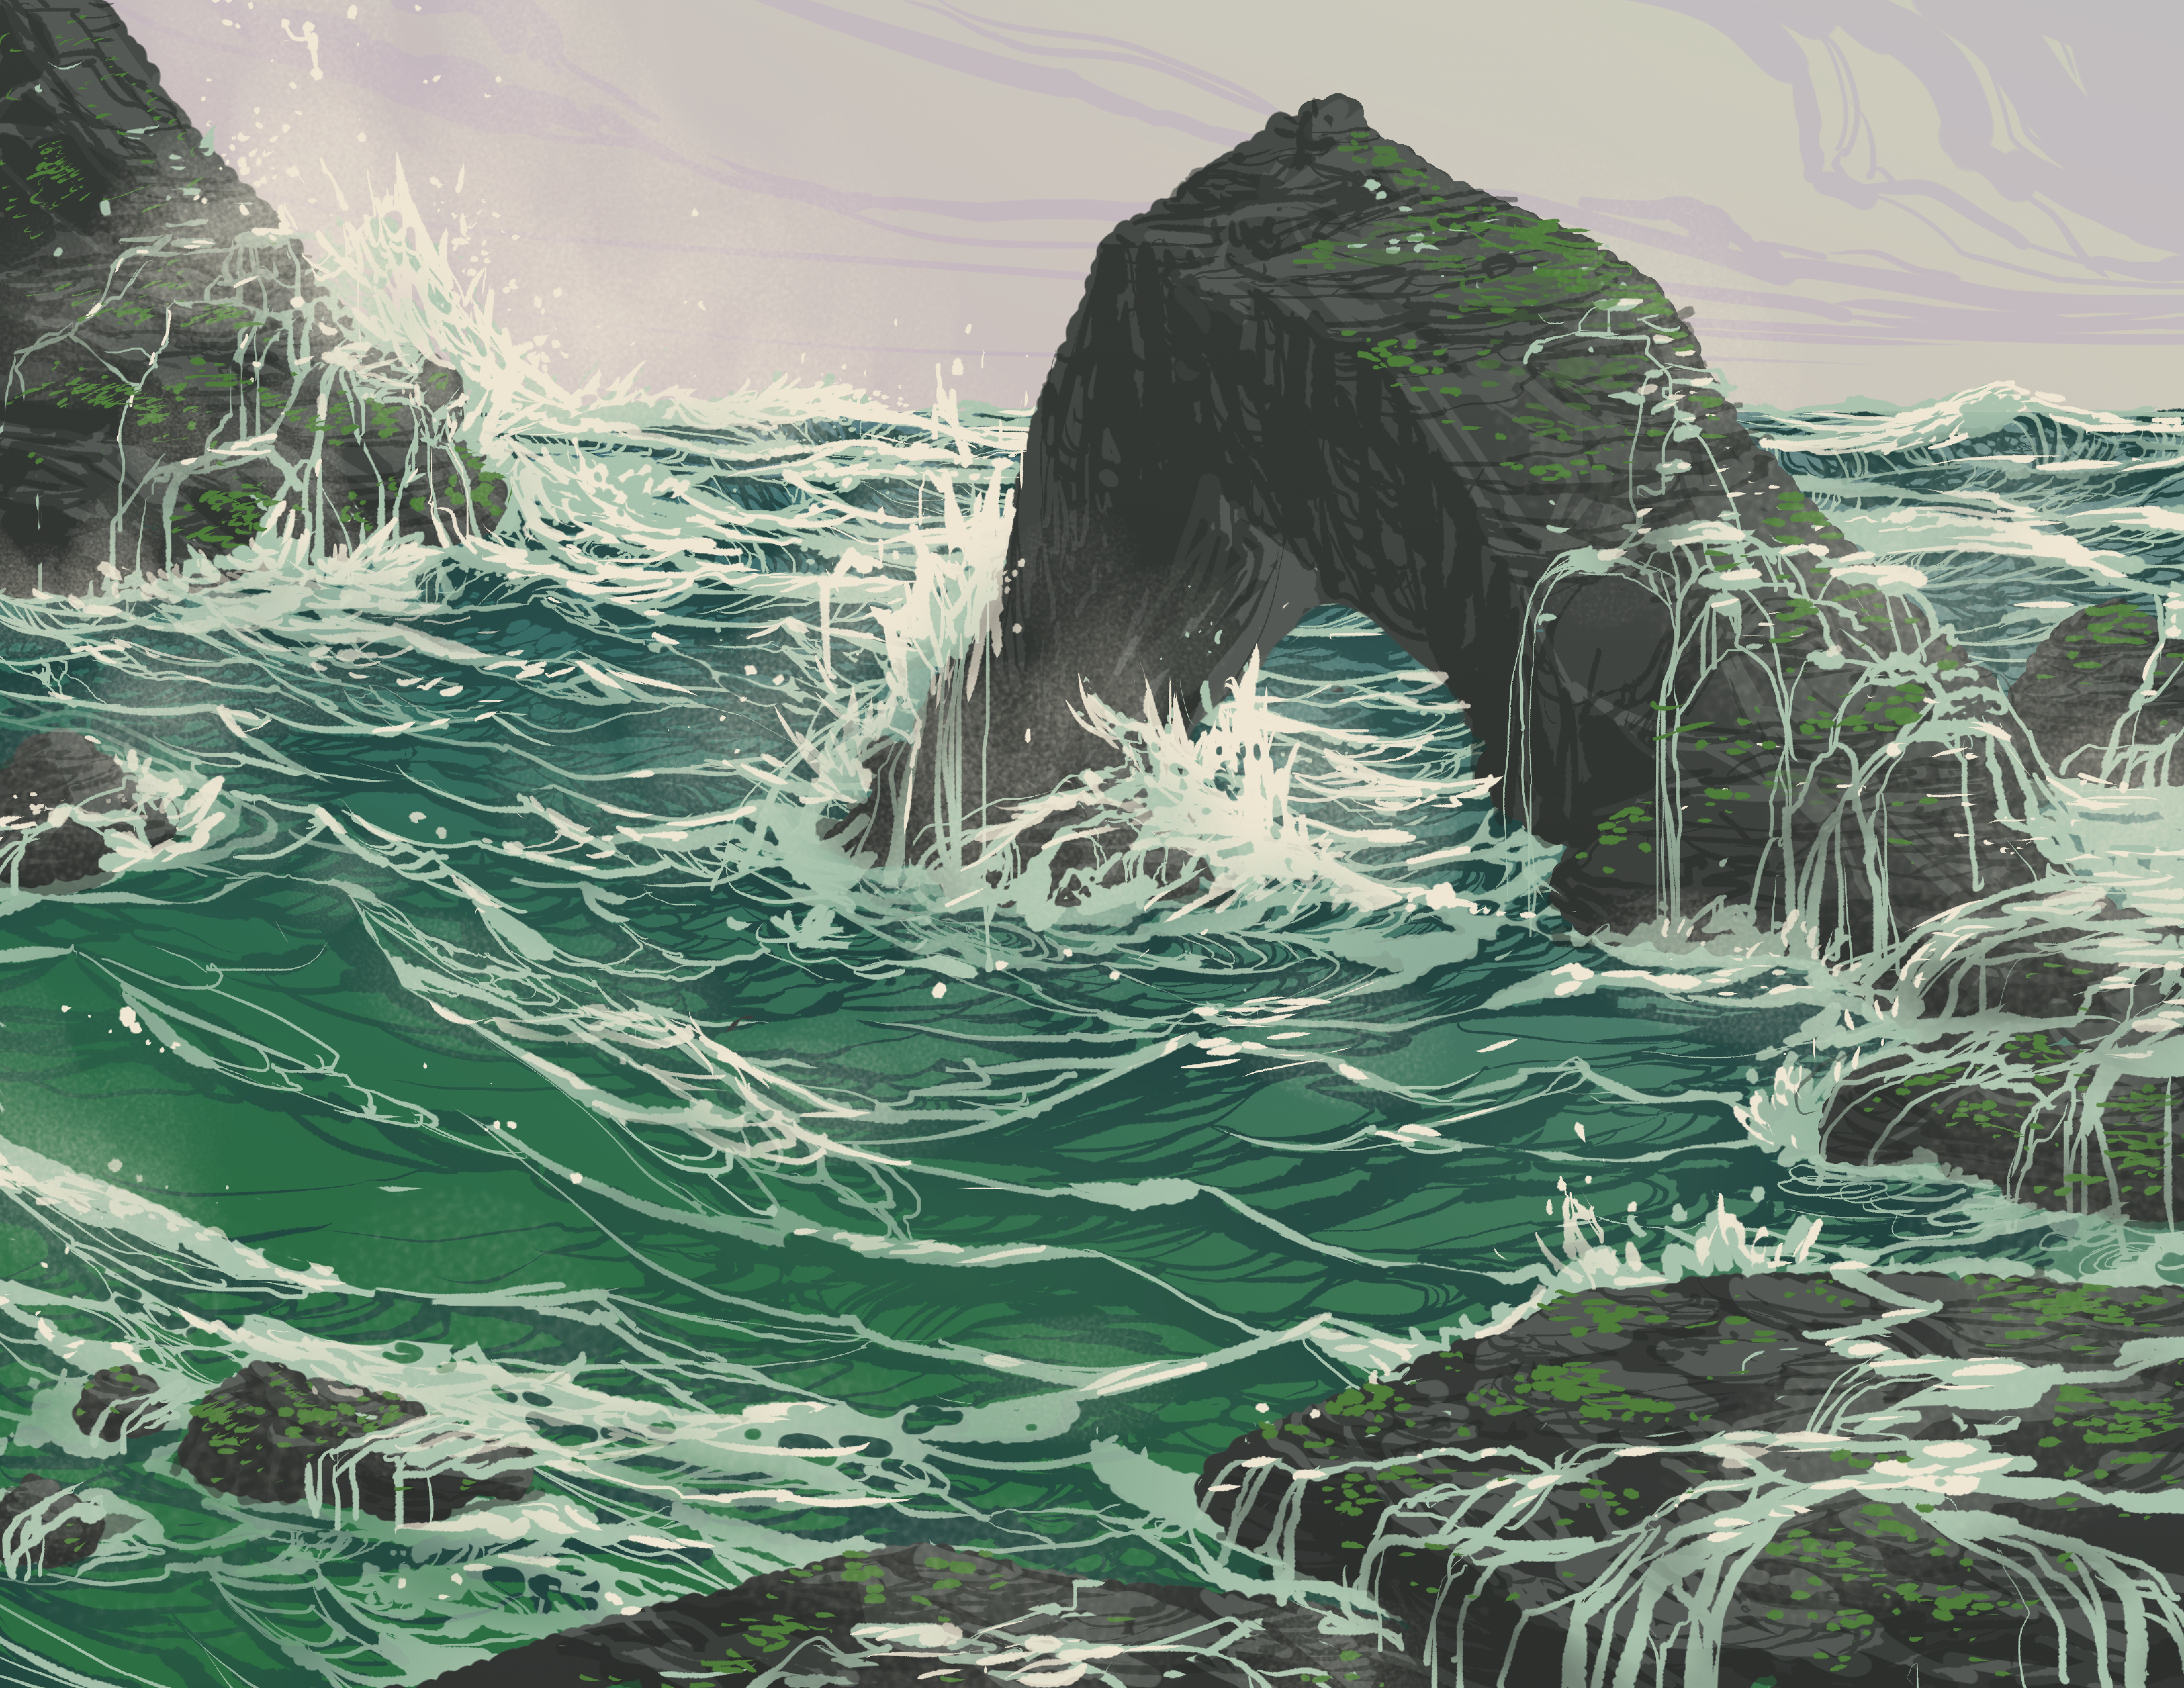 112569 download wallpaper Art, Sea, Waves, Rock, Vector screensavers and pictures for free